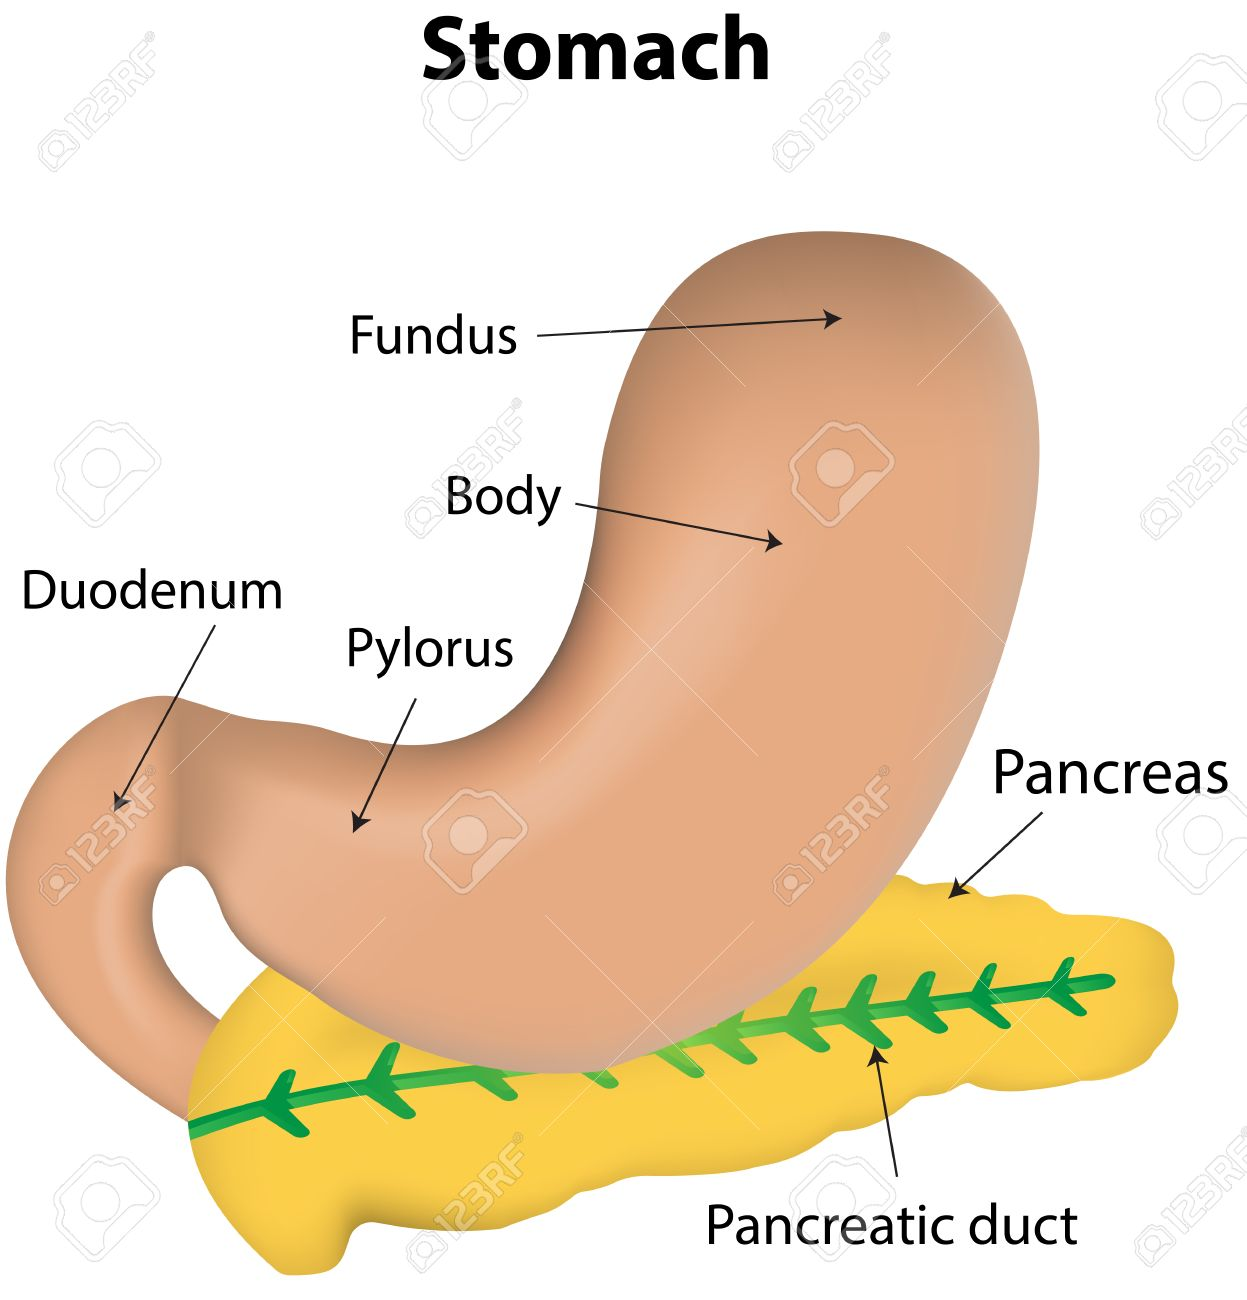 Stomach and pancreas labeled diagram royalty free cliparts vectors stomach and pancreas labeled diagram stock vector 31447515 ccuart Gallery